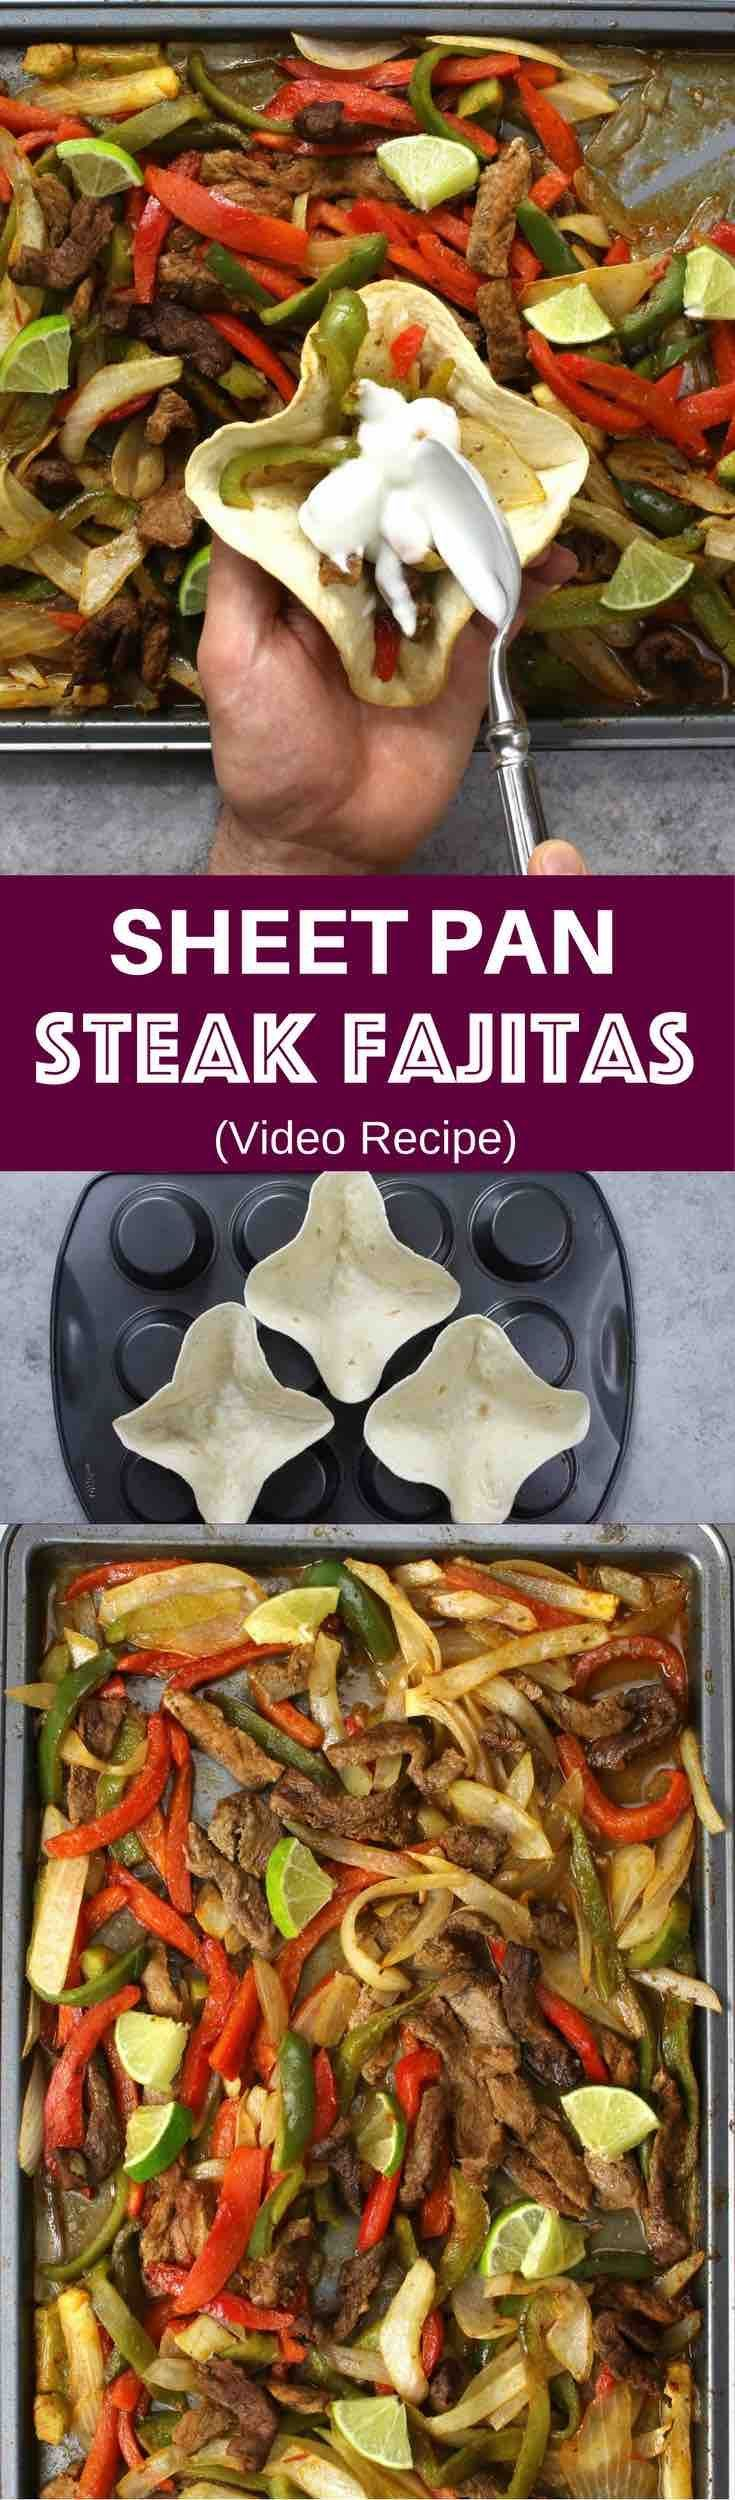 Sheet Pan Steak Fajitas With Taco Bowls – one of the easiest healthy dinner recipes. All you need is only a few simple ingredients: Mixed Bell peppers, sliced onions and steak, mixed with some simple spices (ground cumin, chili powder, garlic powder, salt and olive oil). Perfectly baked in the oven, and served on baked tortilla bowls. Simply Yummy! Make-ahead recipe. Quick and easy dinner recipe. | tipbuzz.com